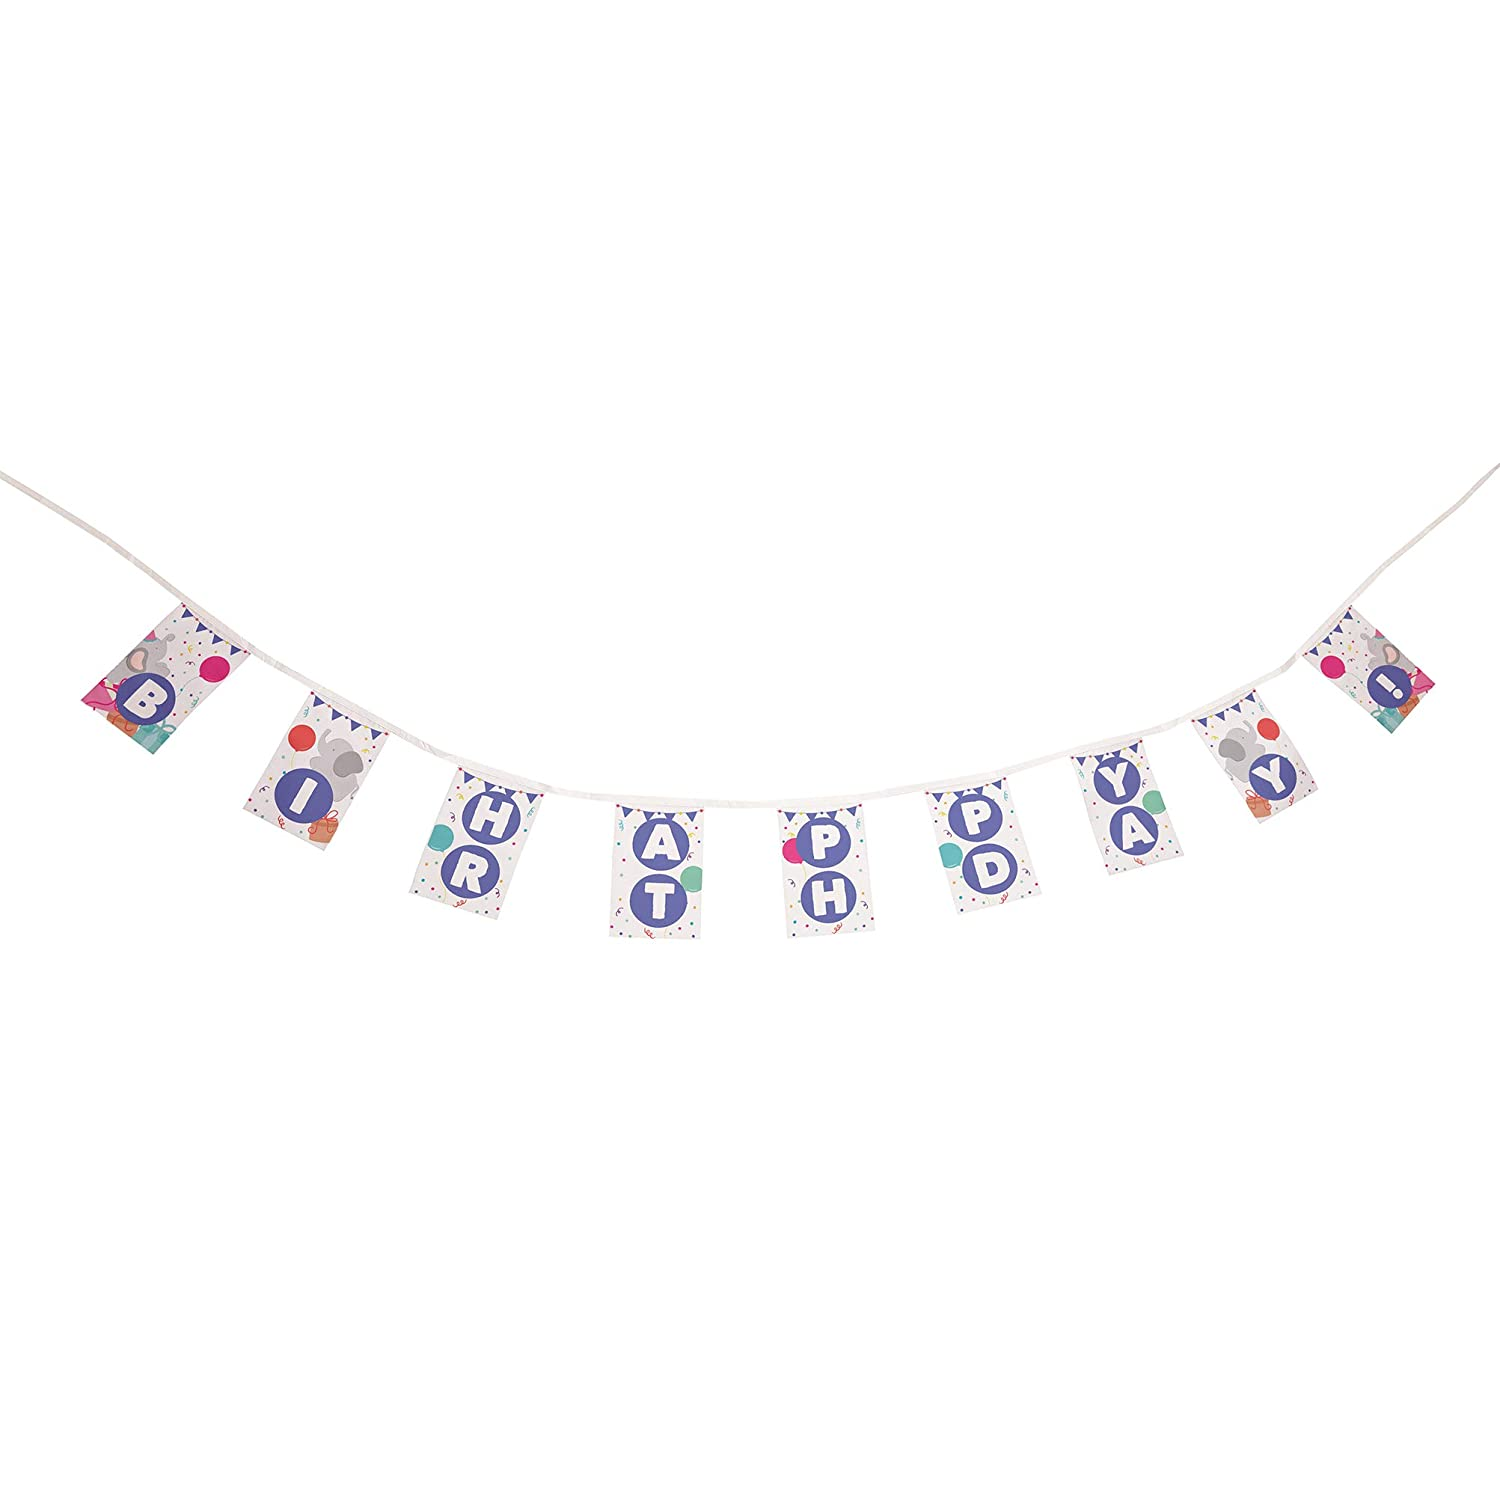 Elephant Themed Fiesta Flags Pennant Banner 10 Feet Long 9 Mini Flags Made of Polyester Cloth Birthday Party Decorations Bunting For Boys Girls